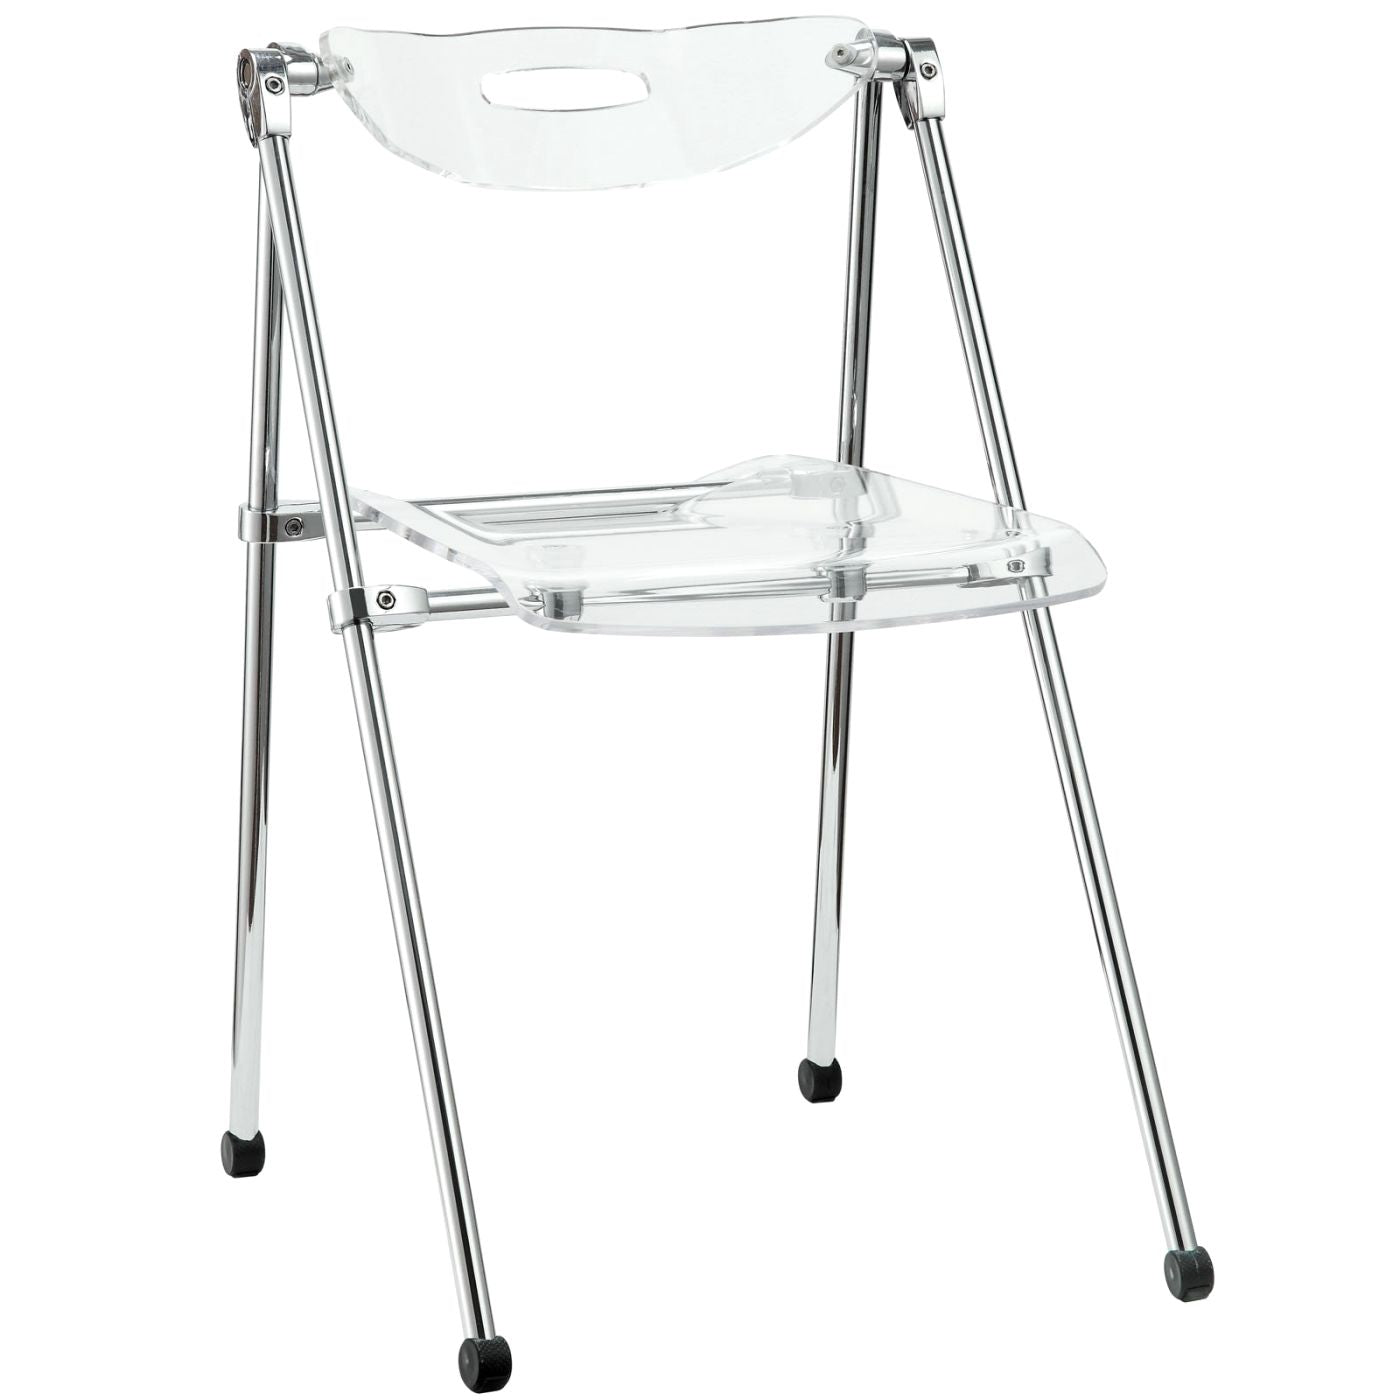 Modway Telescope Folding Chair EEI 148 CLR | 848387022327| $89.50. Dining  Chairs ...